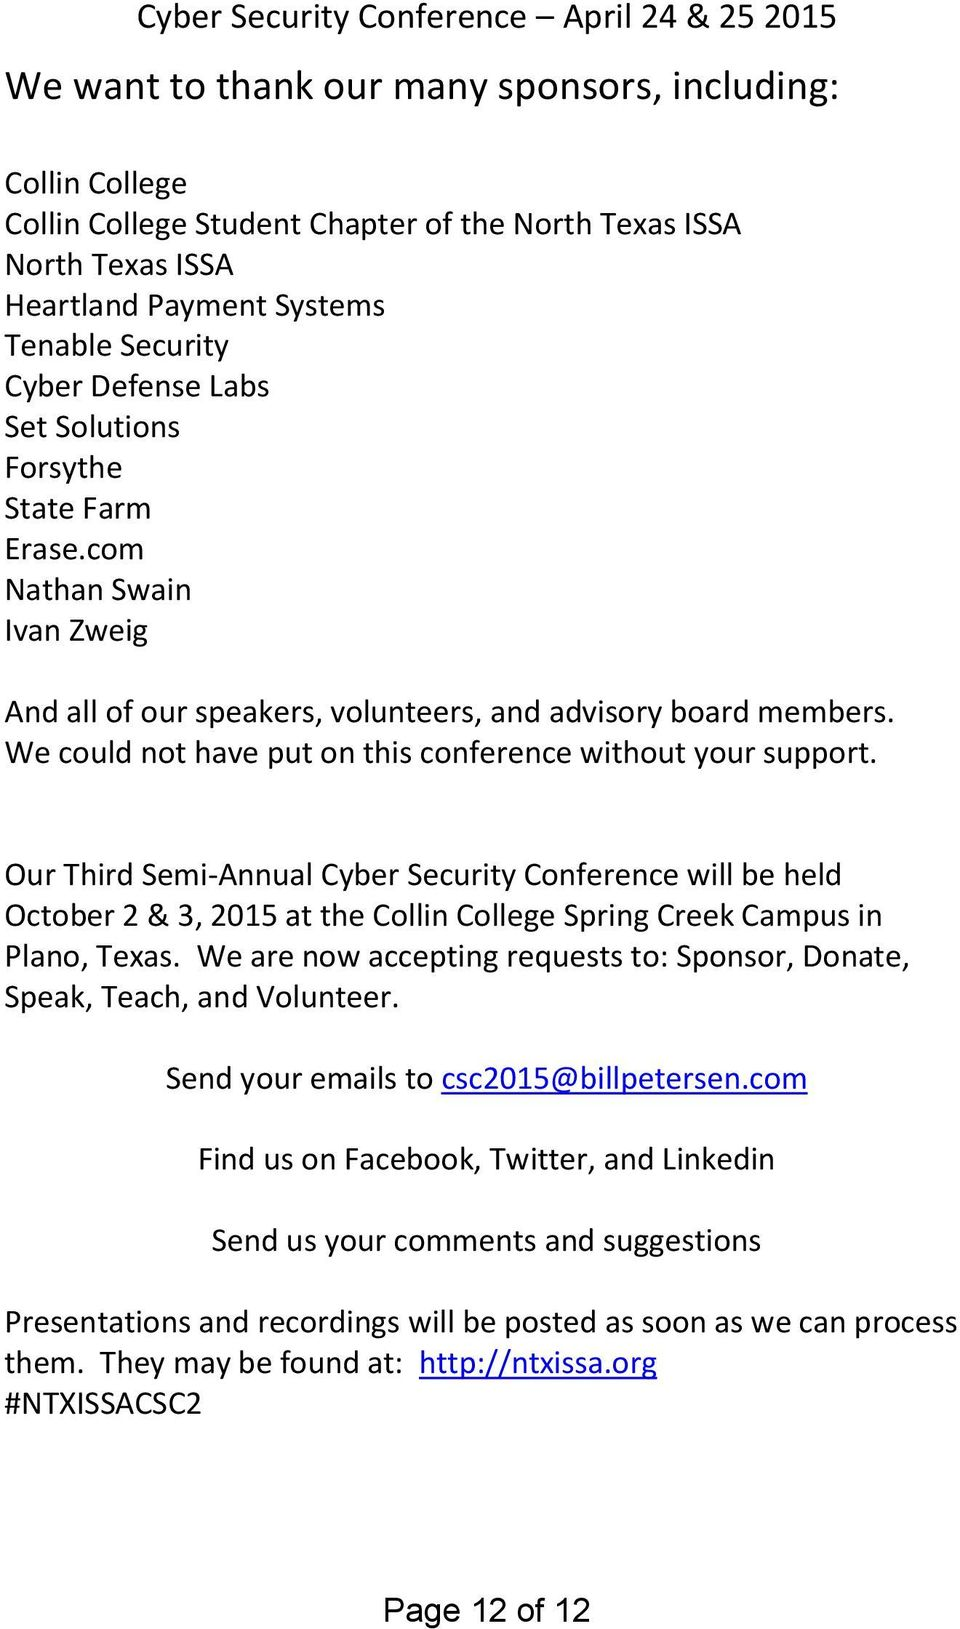 Our Third Semi-Annual Cyber Security Conference will be held October 2 & 3, 2015 at the Collin College Spring Creek Campus in Plano, Texas.